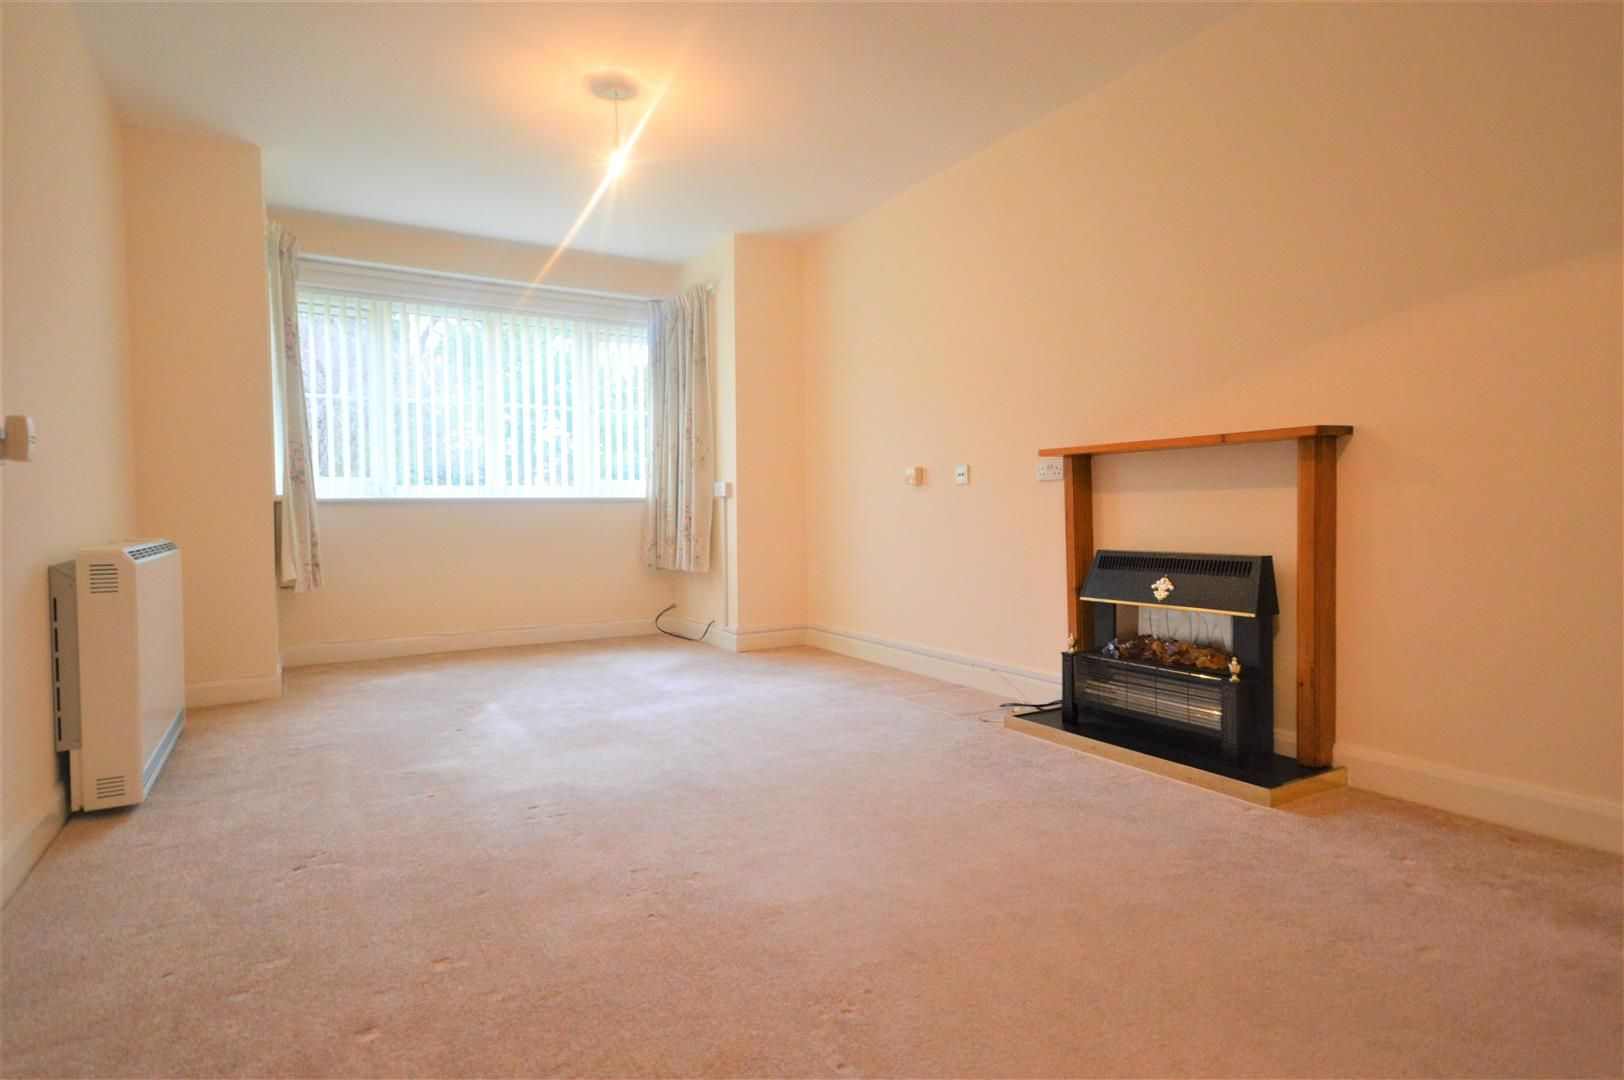 1 bed retirement-property for sale in Leominster  - Property Image 4